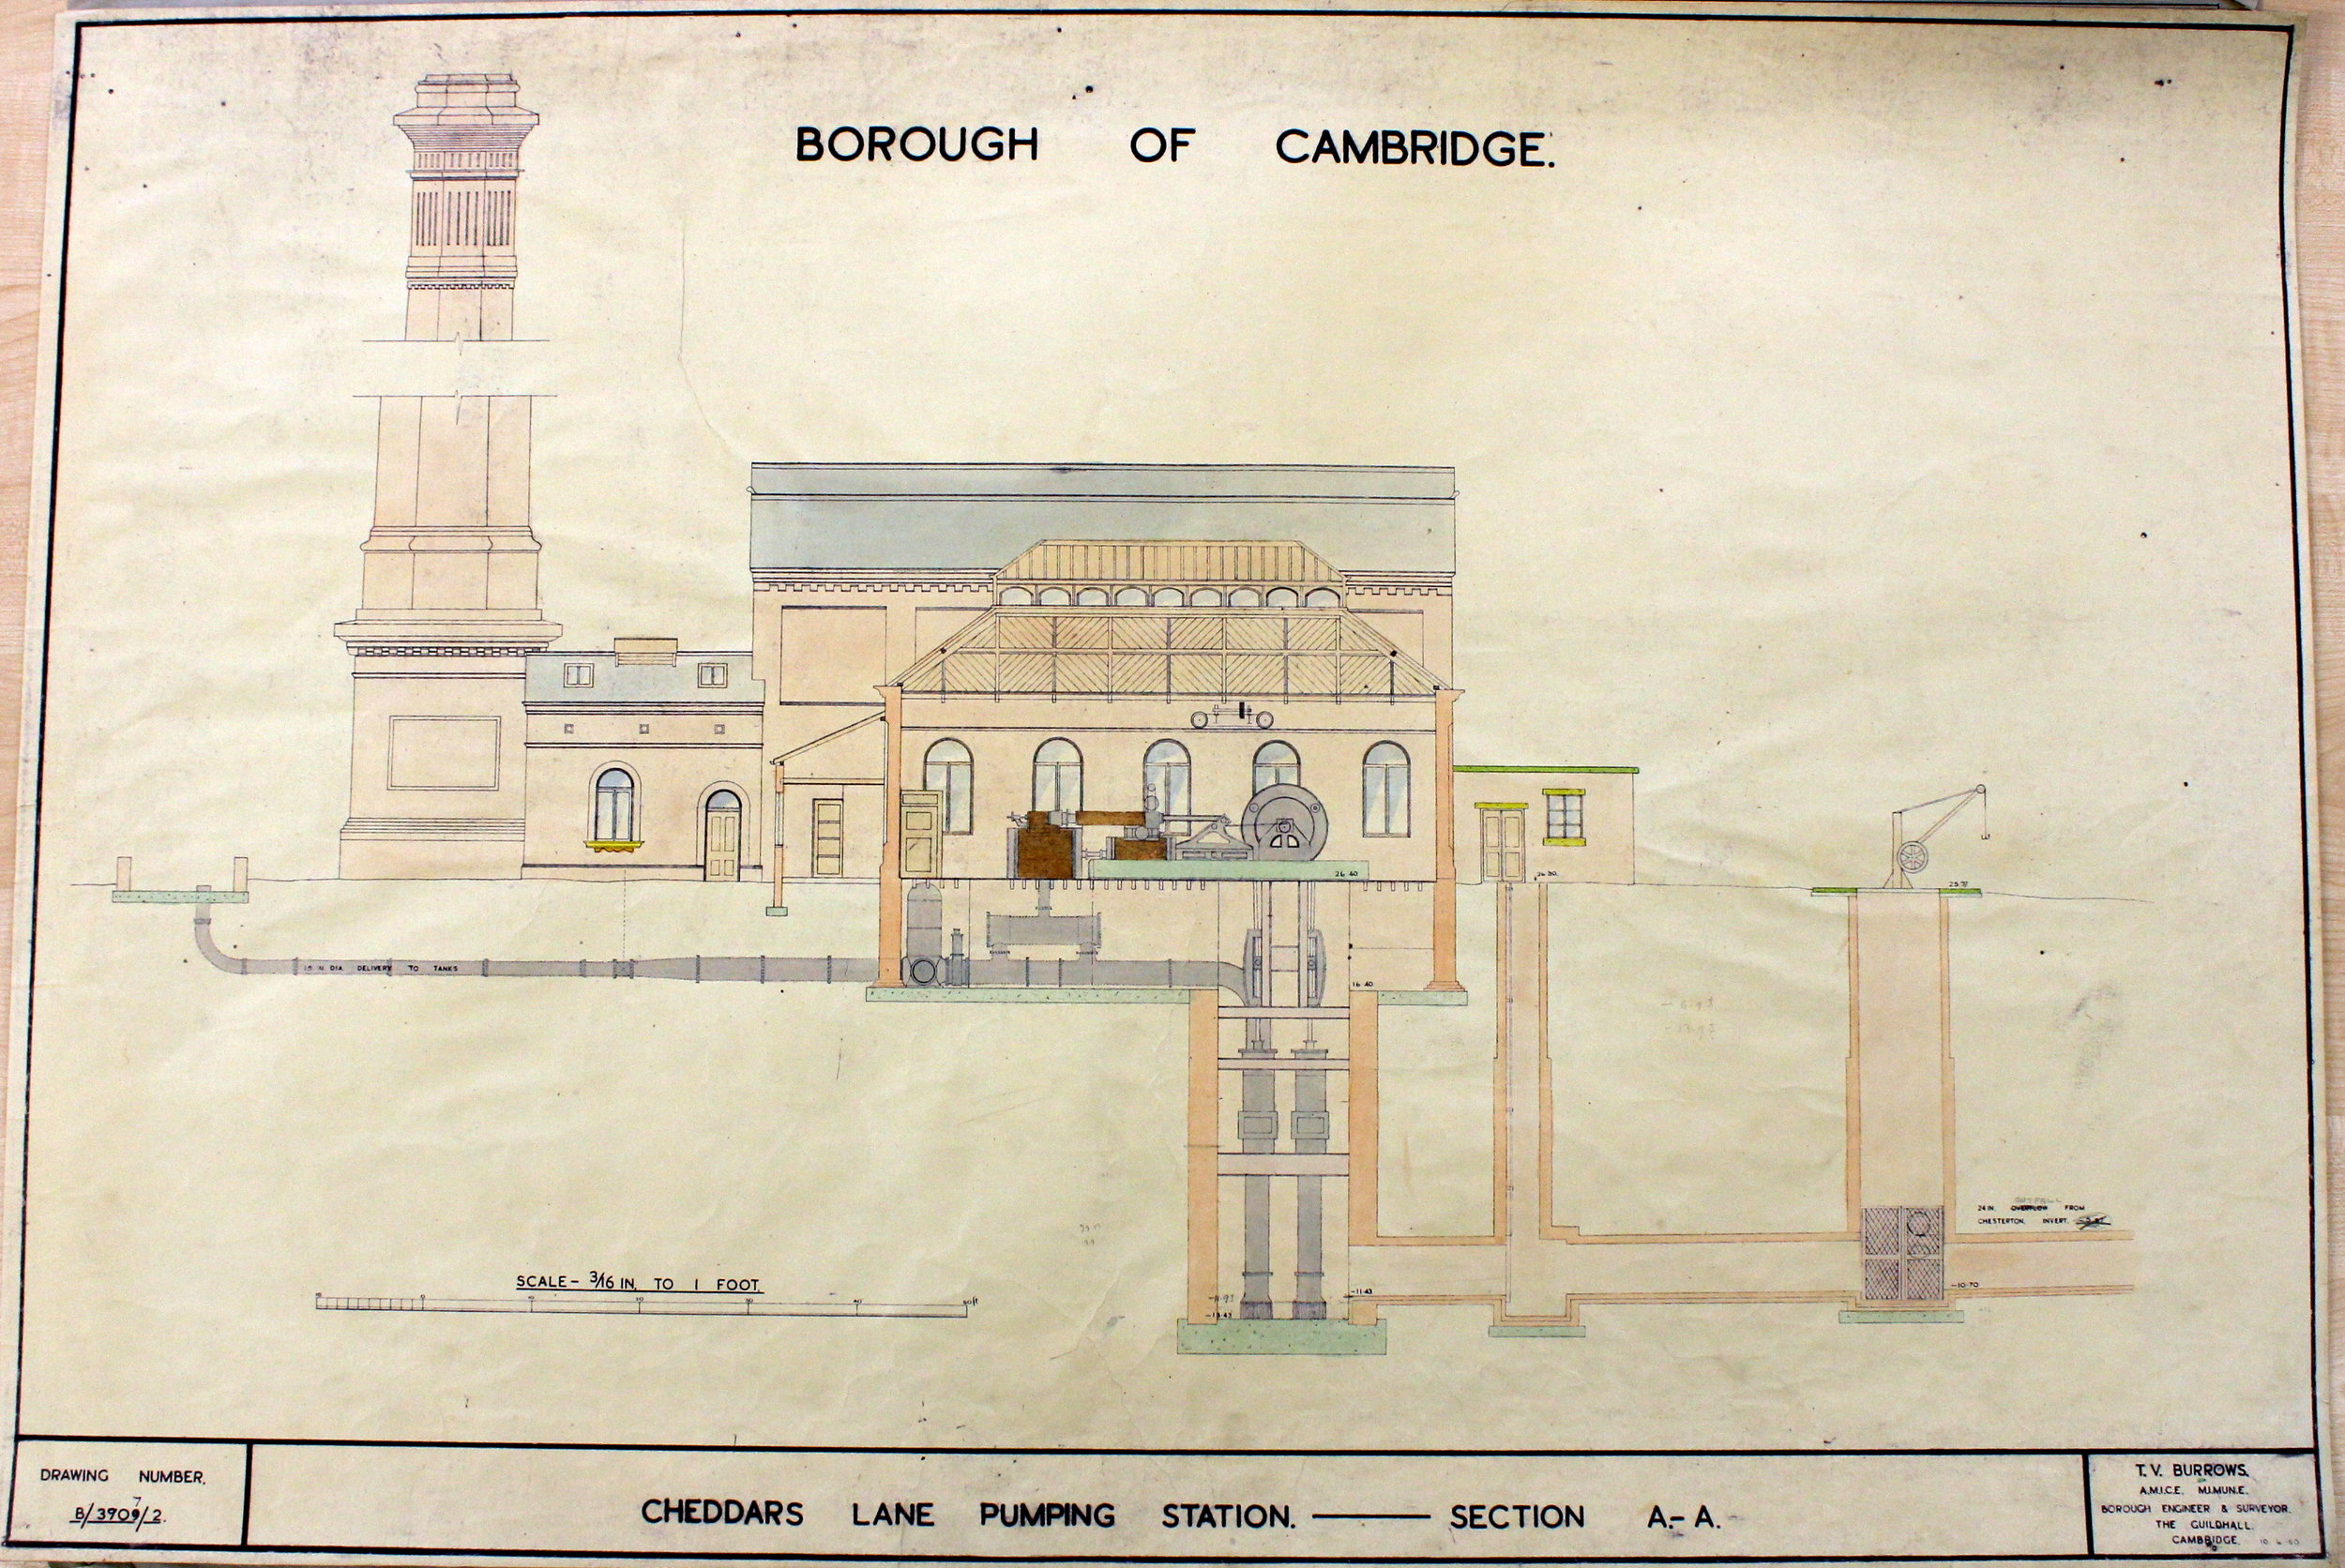 Borough_of_Cambridge_pumping_station_A-A_section_original_architectsplans.JPG